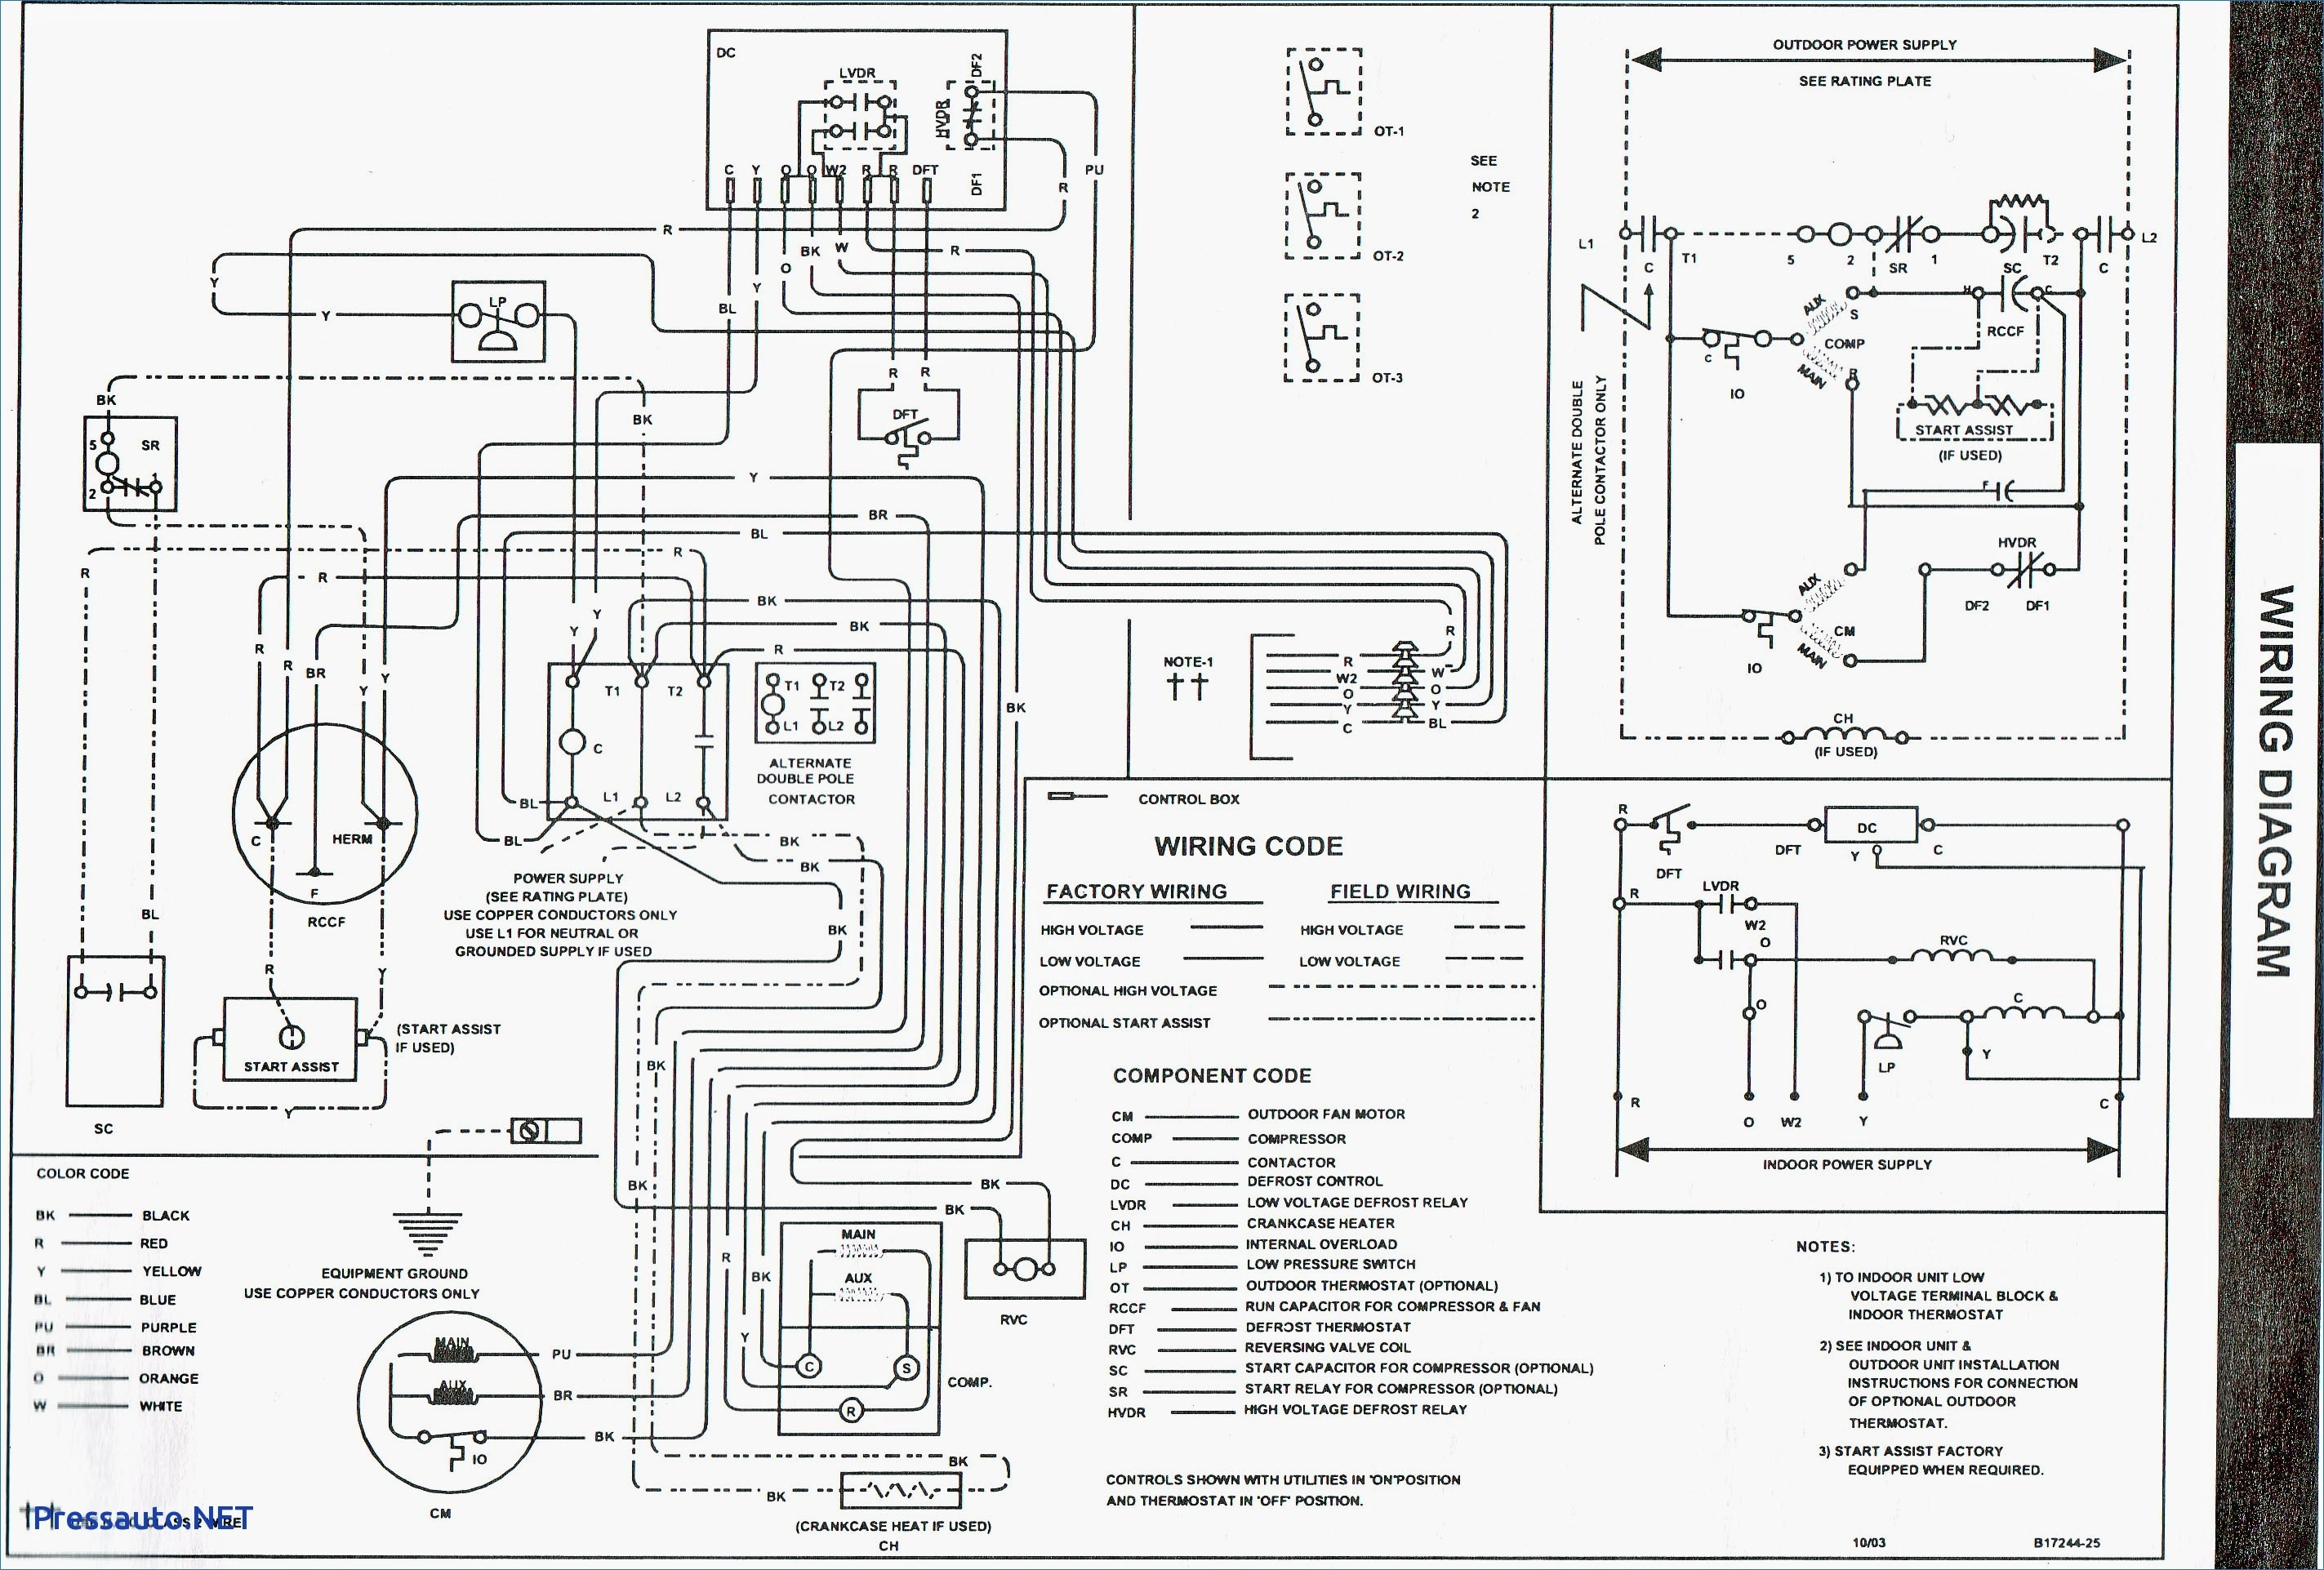 wiring diagram for york air handler